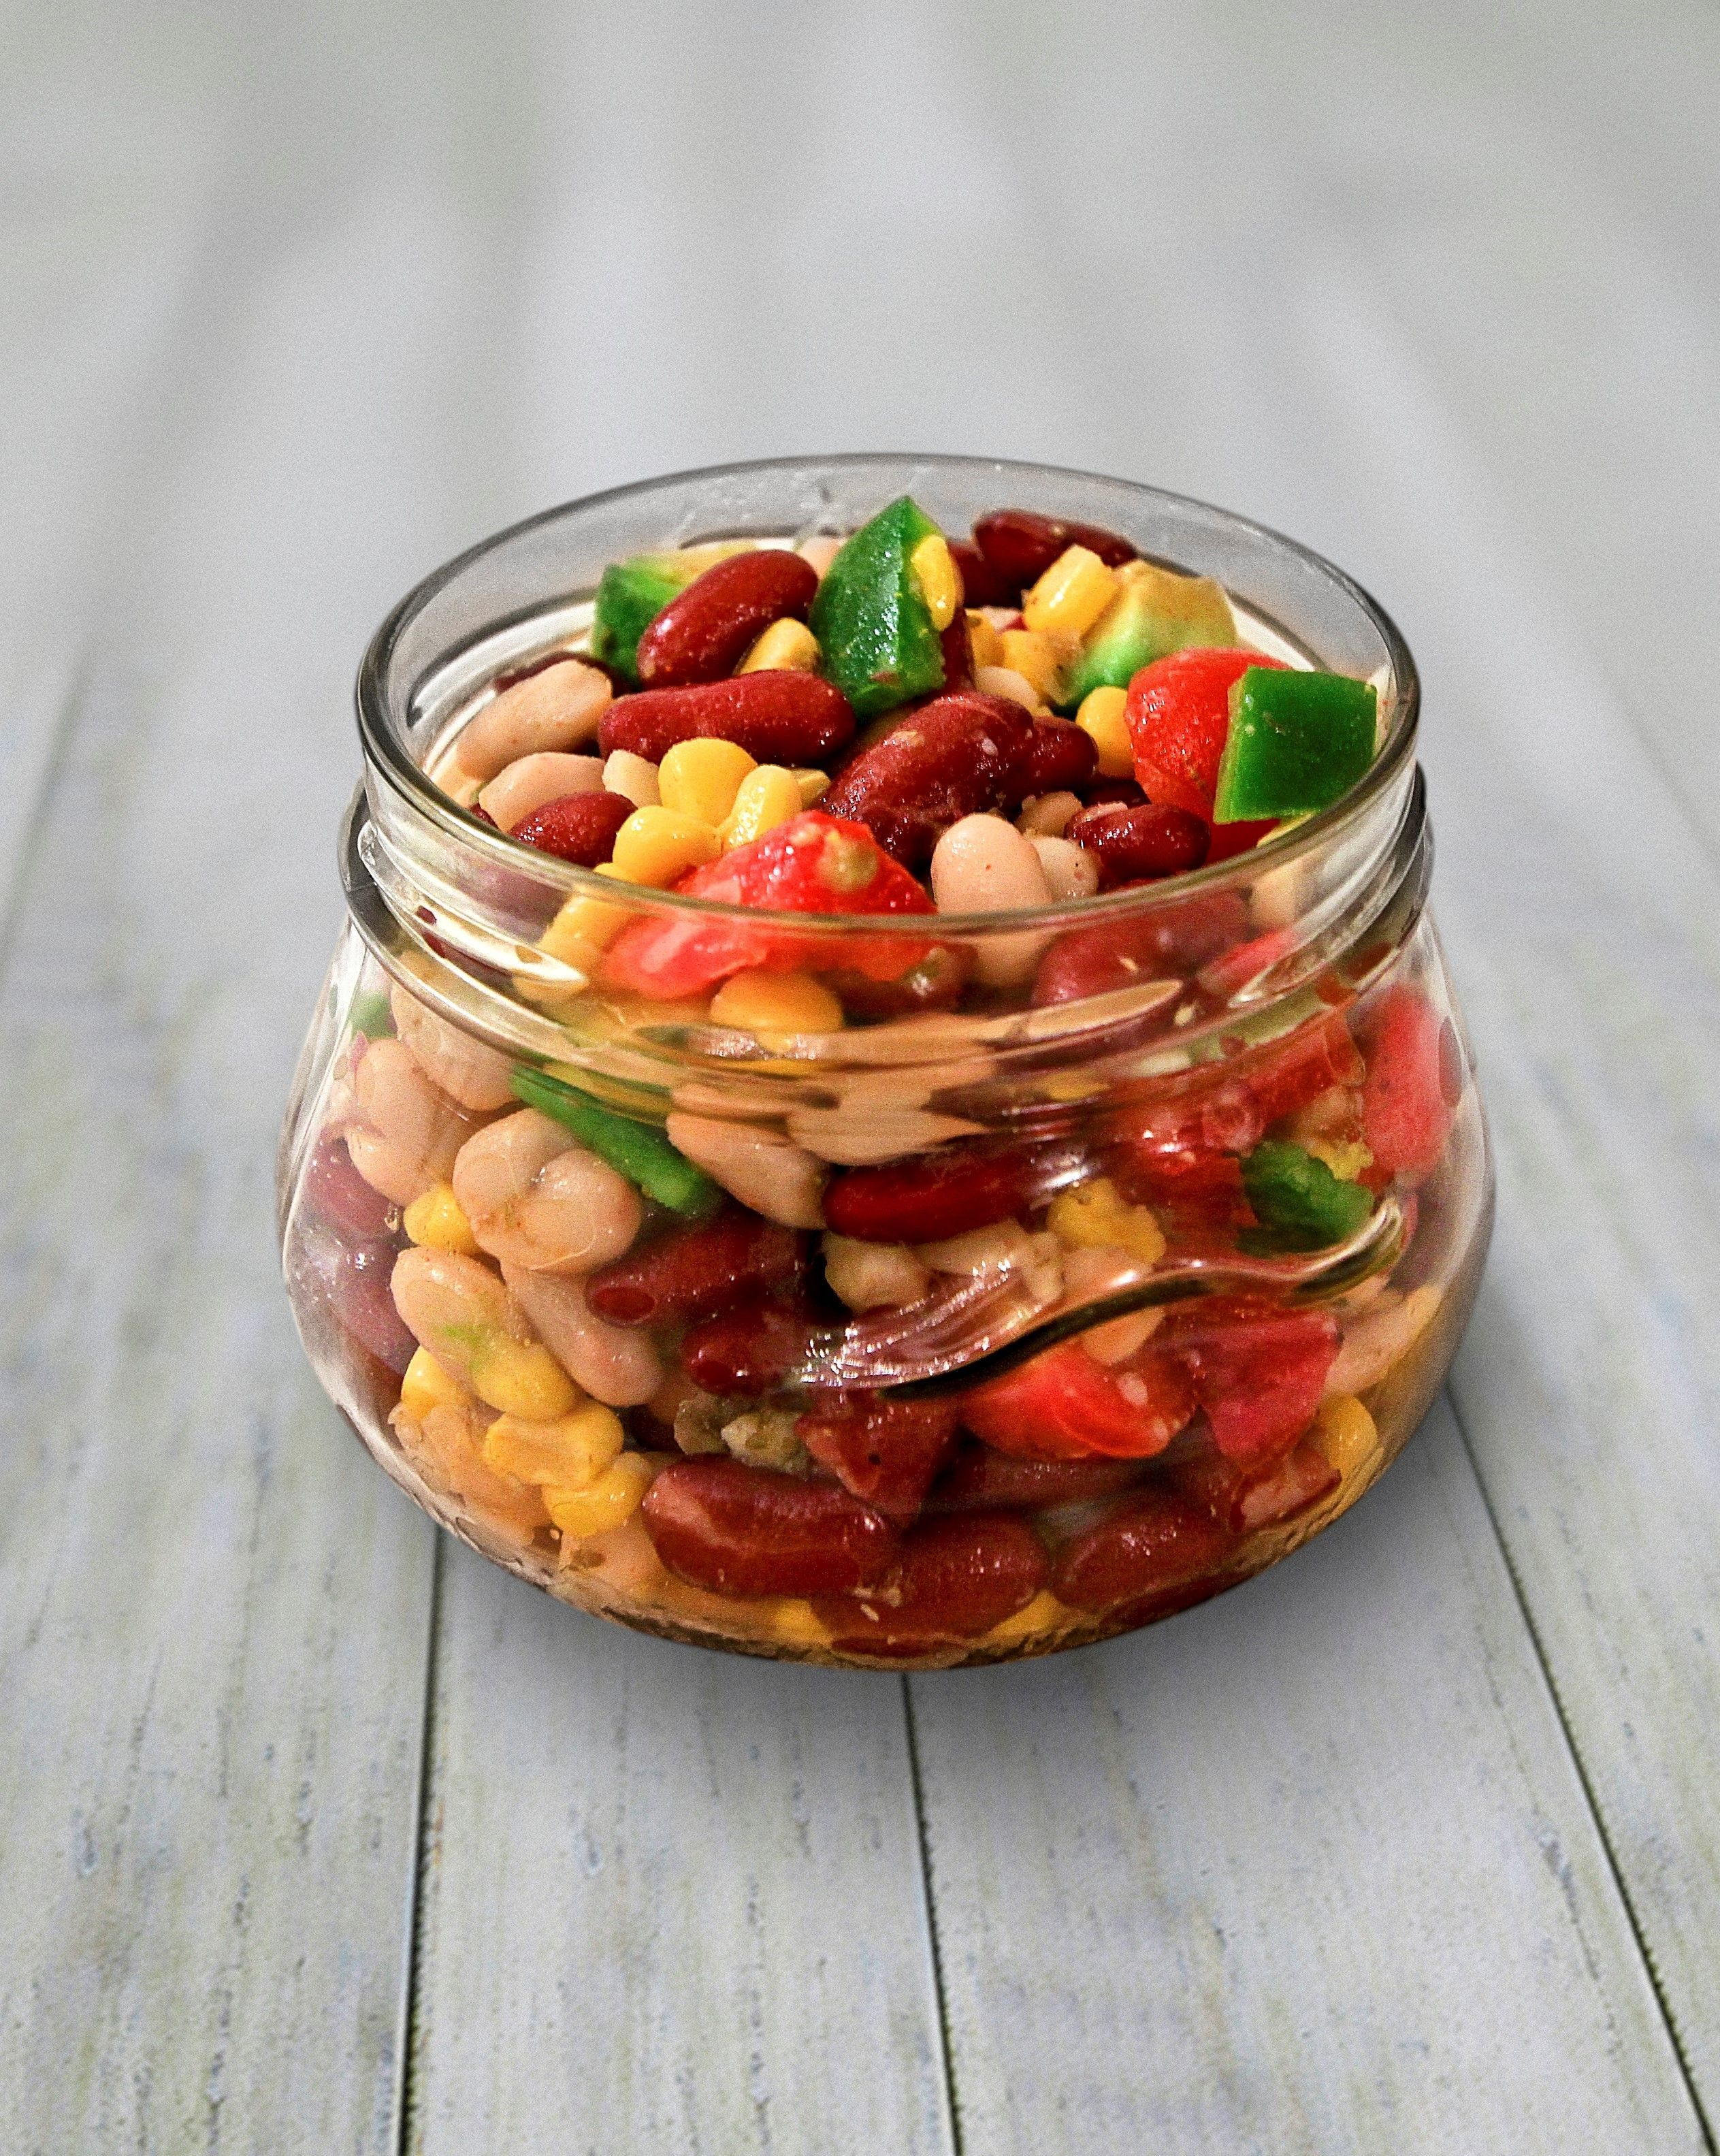 SPICY MEXICAN BEAN SALAD POT This tasty mixed bean salad has a really nice kick to it Colourful vibrant and refreshing this lunch pot has just the right amount of sweet a...